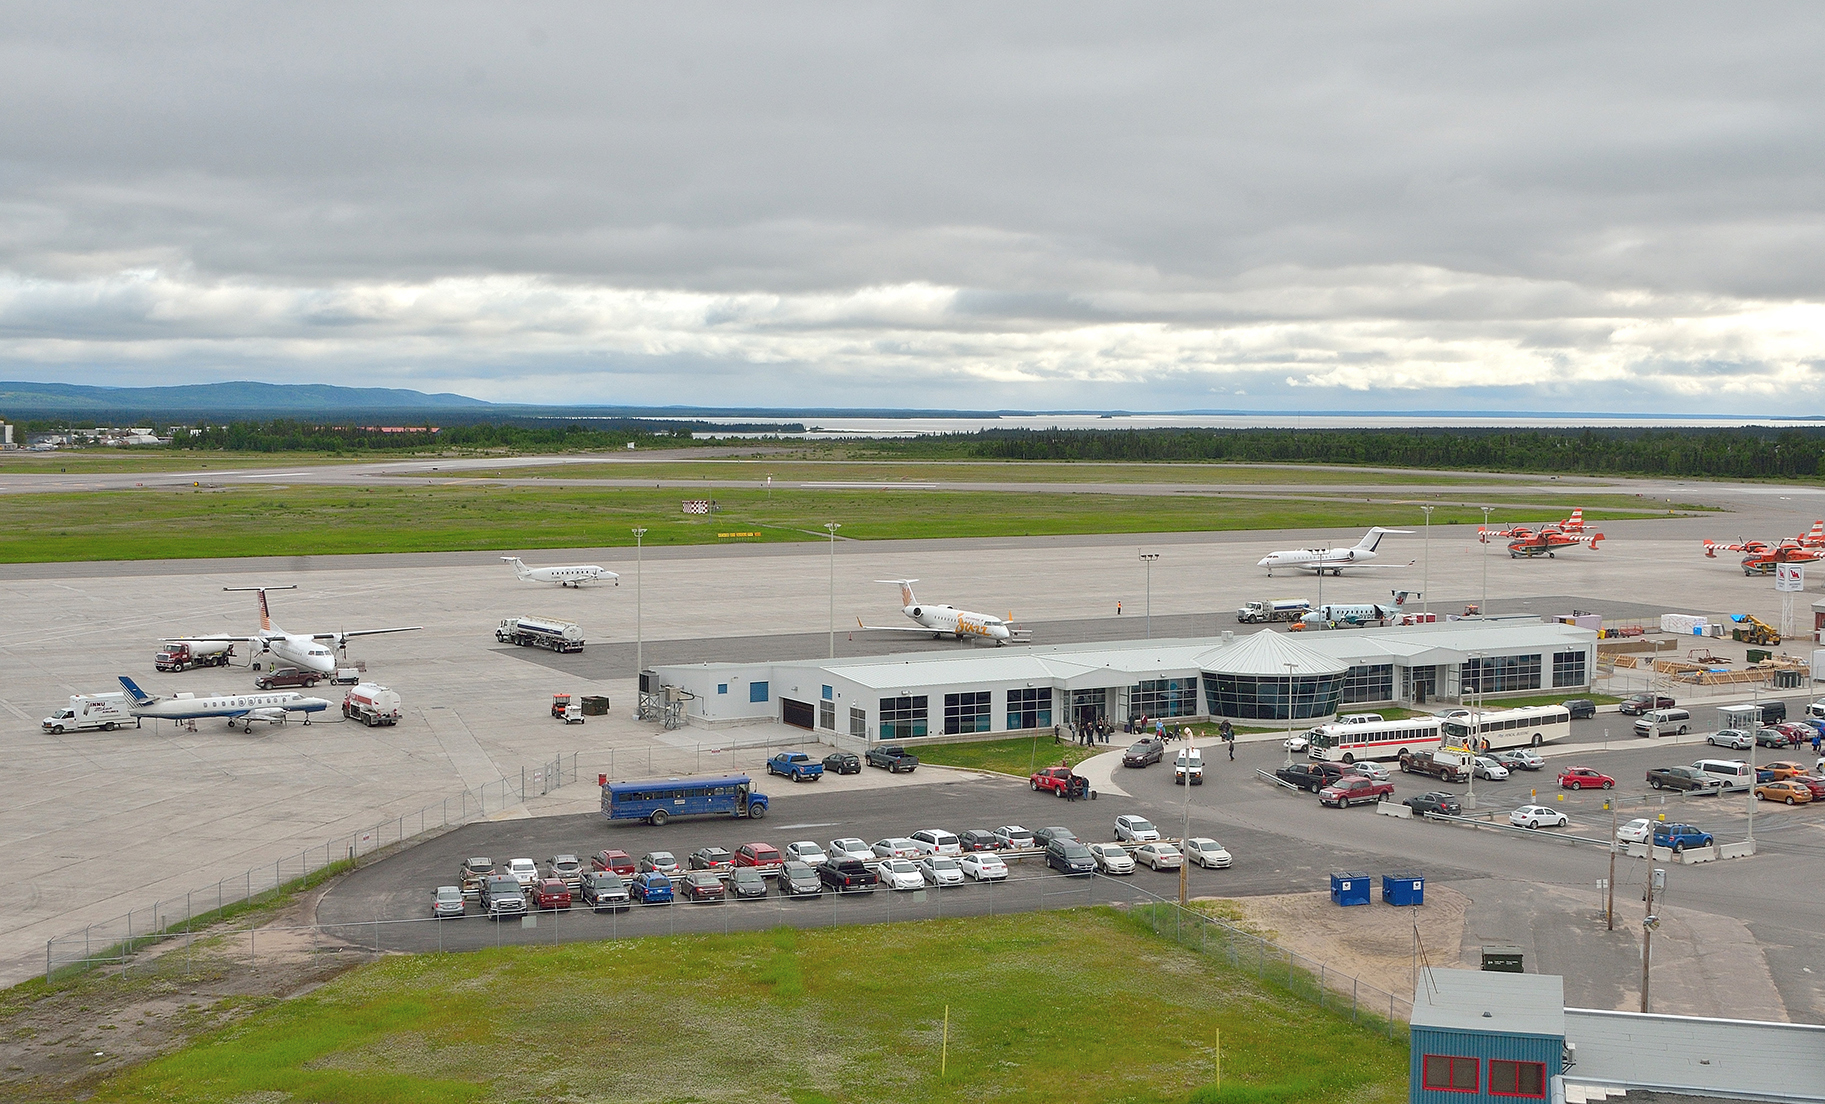 5-wing-tempo-nov-airfield-gb2015-07-026.jpg